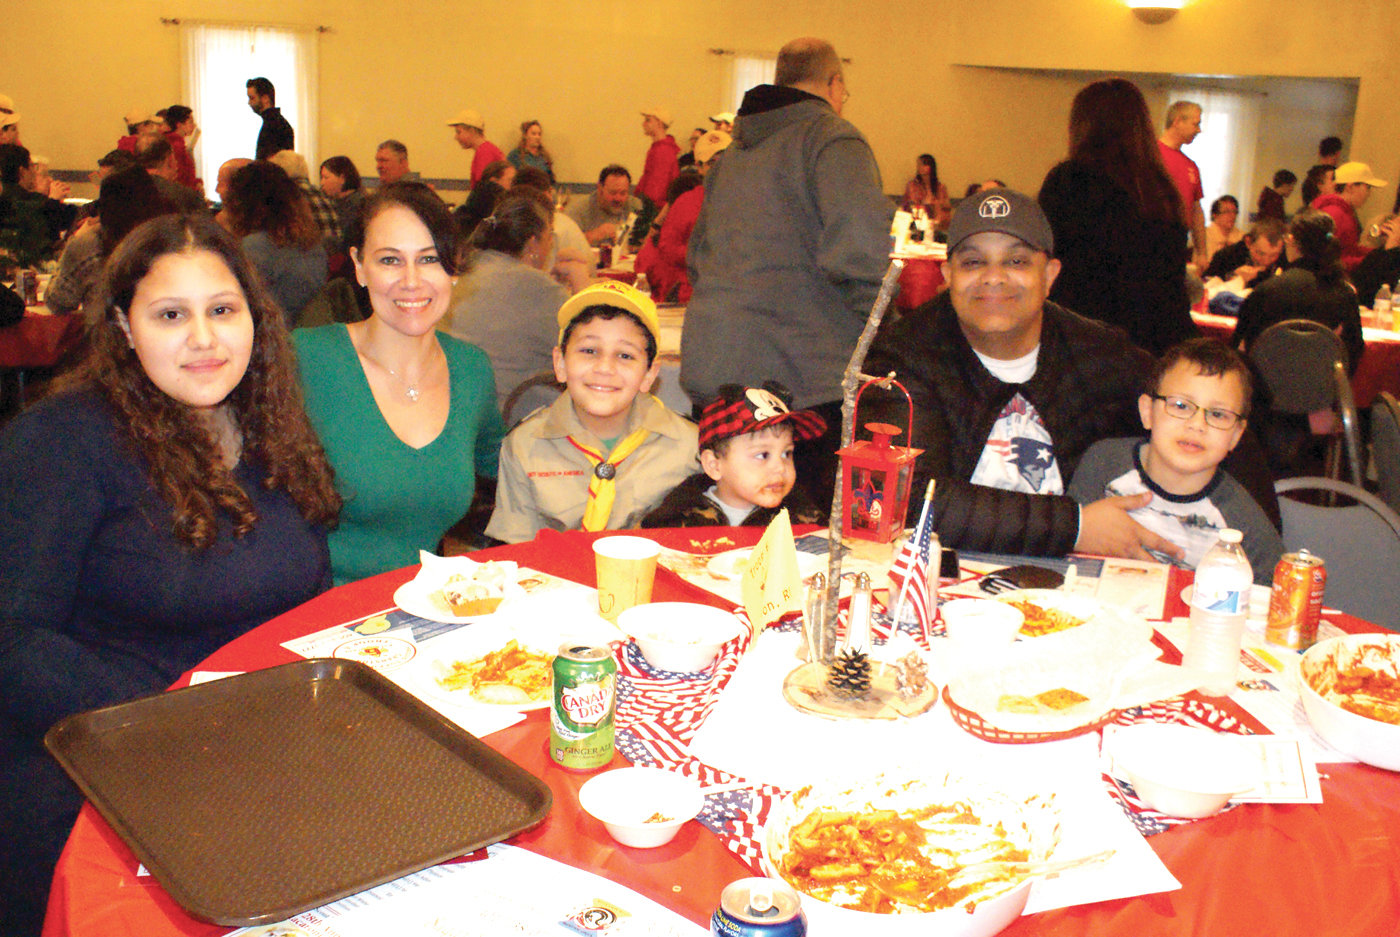 A FAMILY MATTER: Boy Scout Nicholas Espinal of Troop 6 Cranston took time from serving guests to pose with his family during Sunday's dinner. Pictured are 15-year-old Emily, his mother, Cheryl, 10-year-old Nicholas, 2-year-old Evan, his father, Carlos, and 7-year-old Carson.